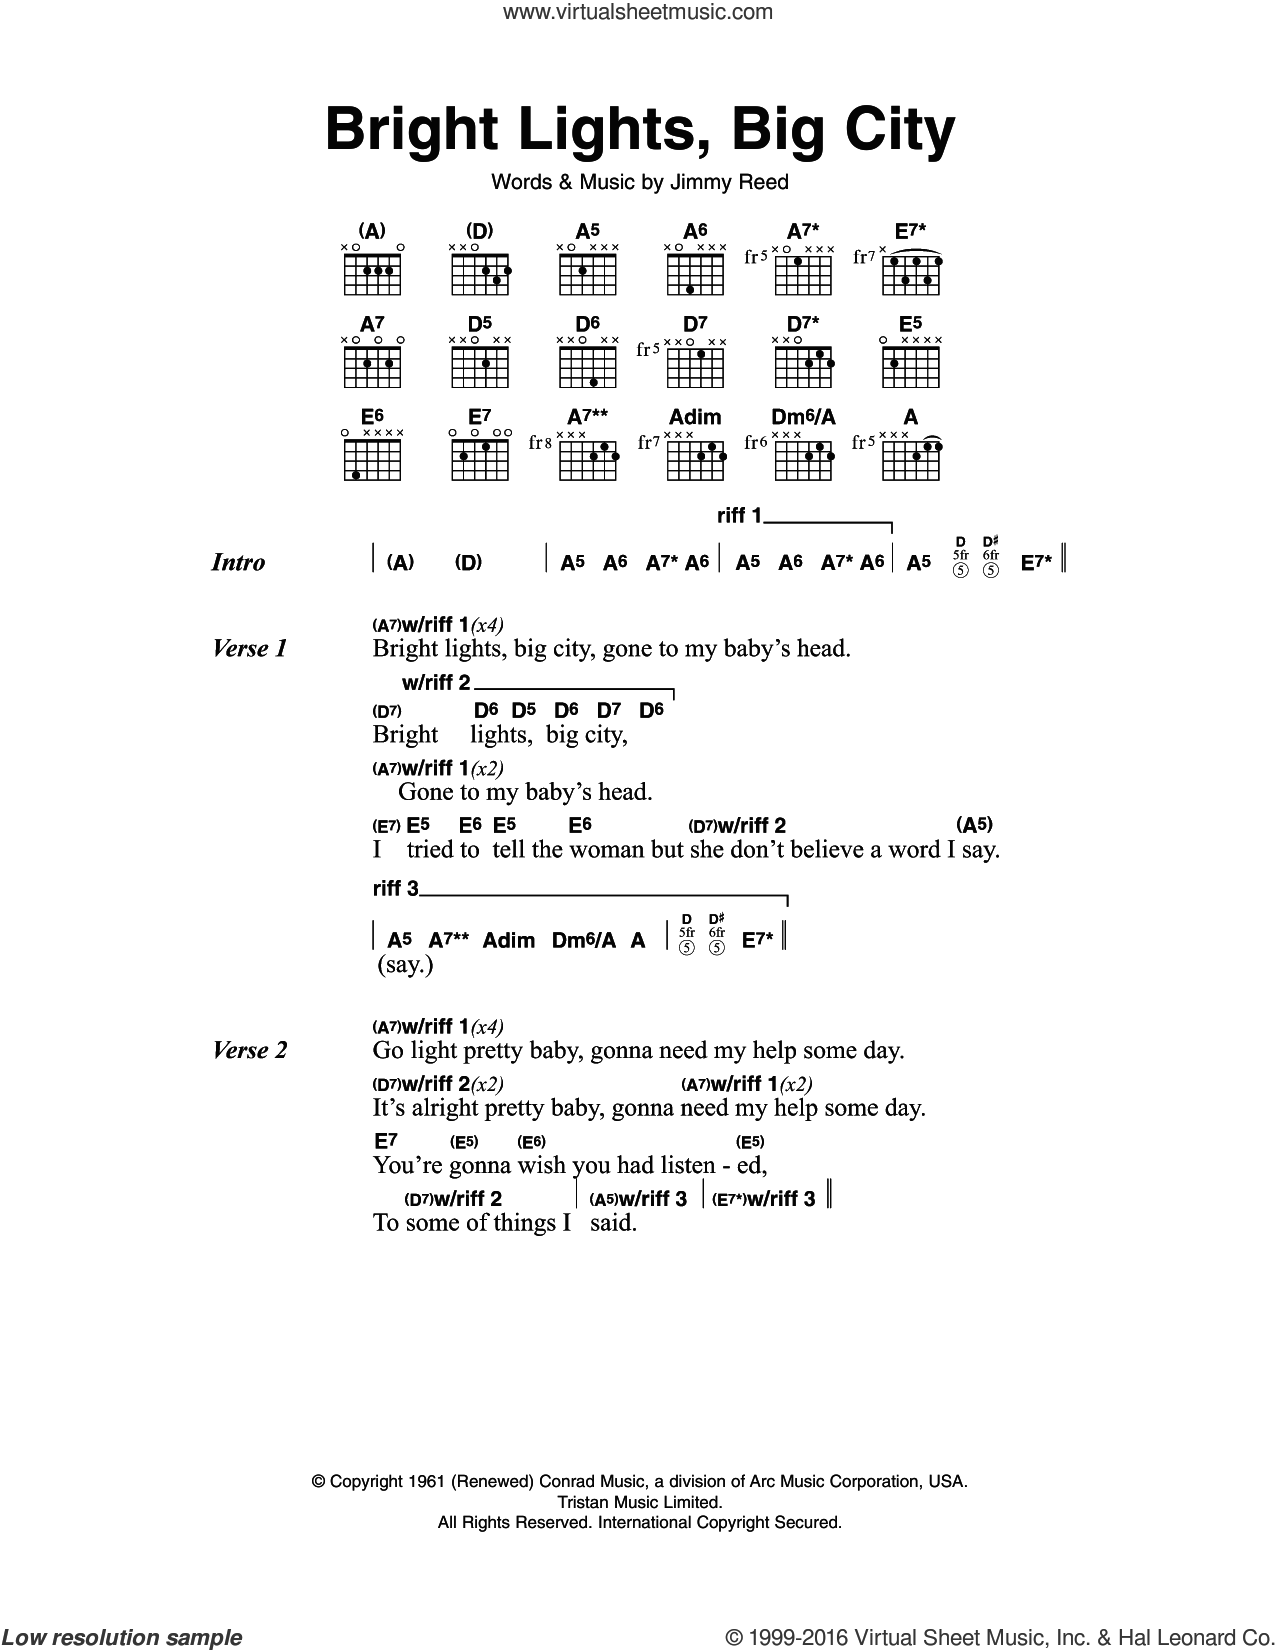 Bright Lights, Big City sheet music for guitar (chords) by Jimmy Reed. Score Image Preview.